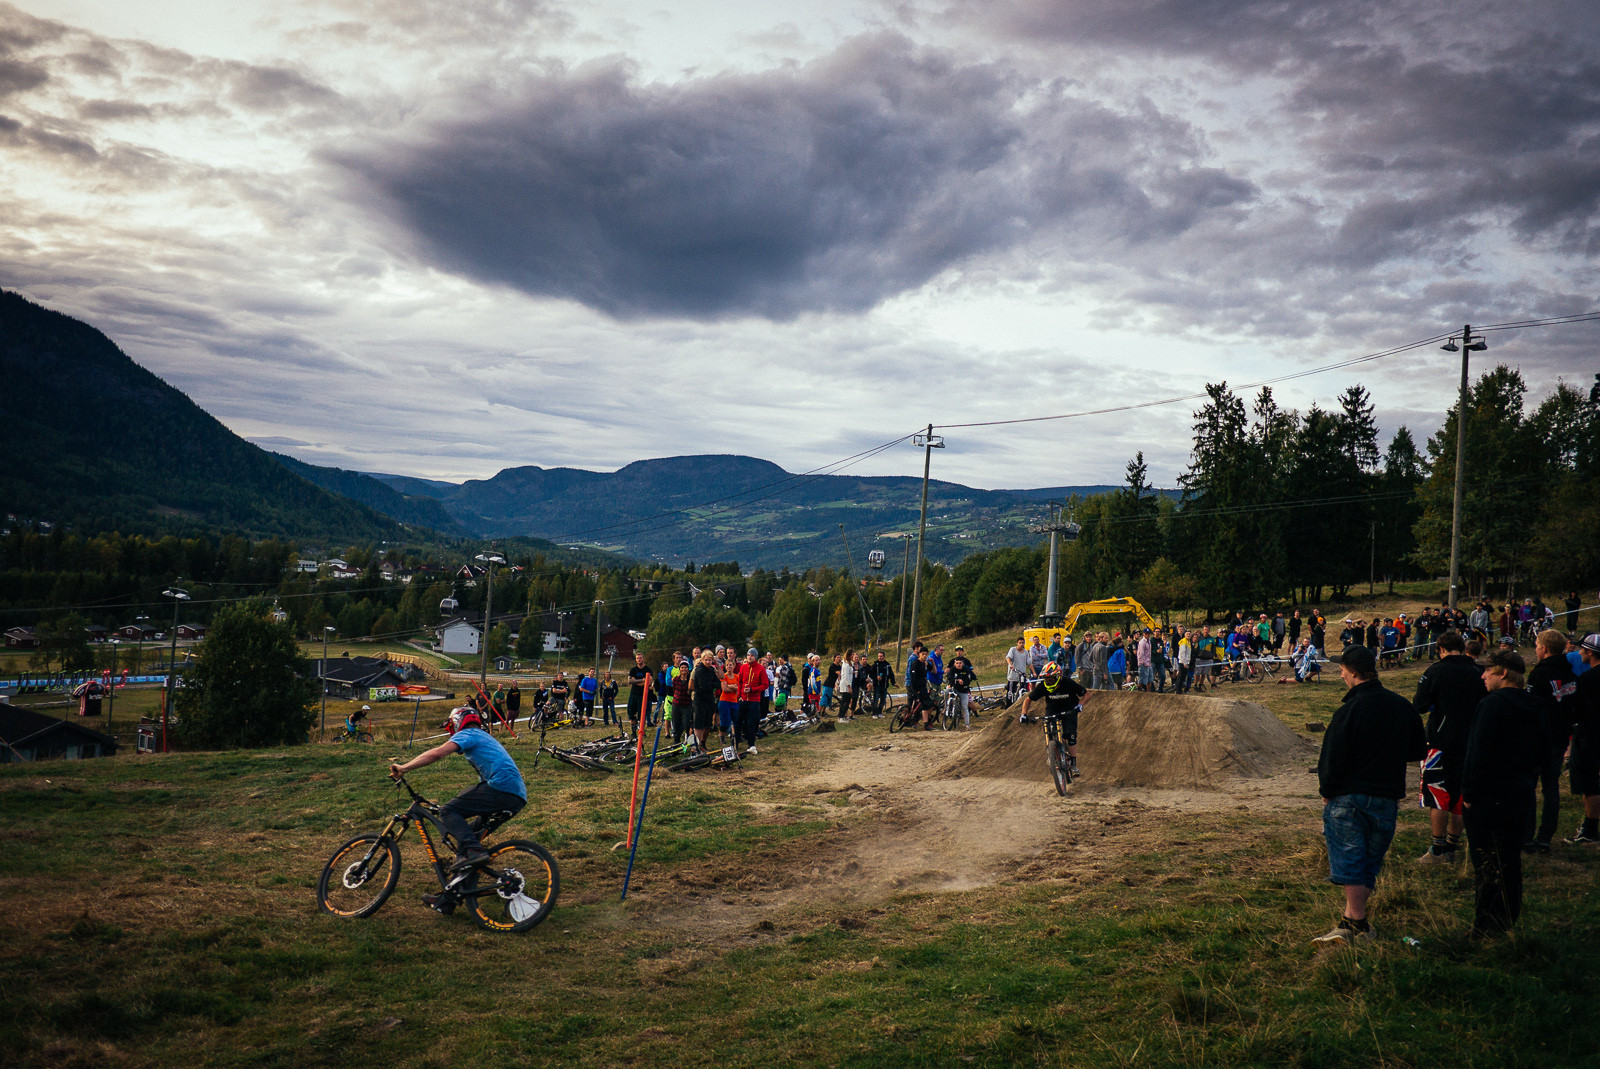 Joe Bowman Leading Marshy at Industry World Champs - Has-Beens vs. Wannabes! Industry World Champs Race at Hafjell - Mountain Biking Pictures - Vital MTB